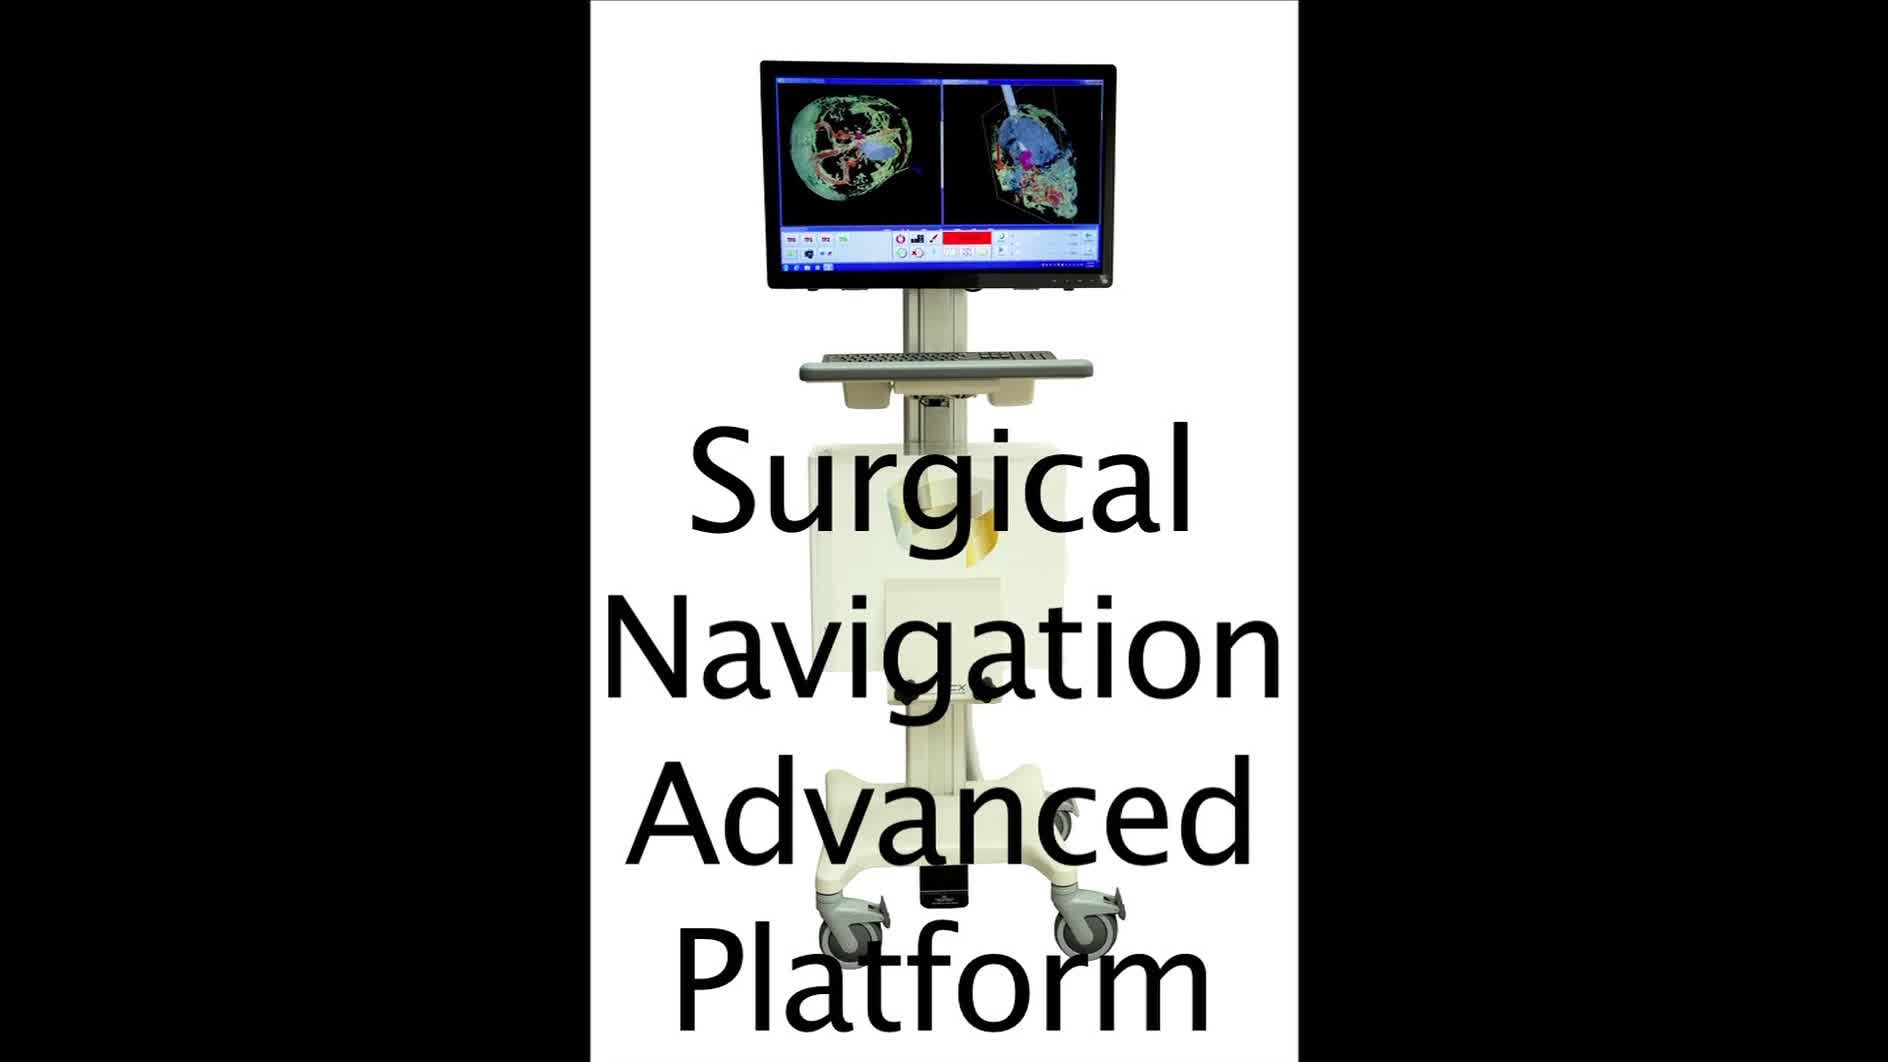 Surgical Theater's Surgical Navigation Advanced Platform (SNAP)